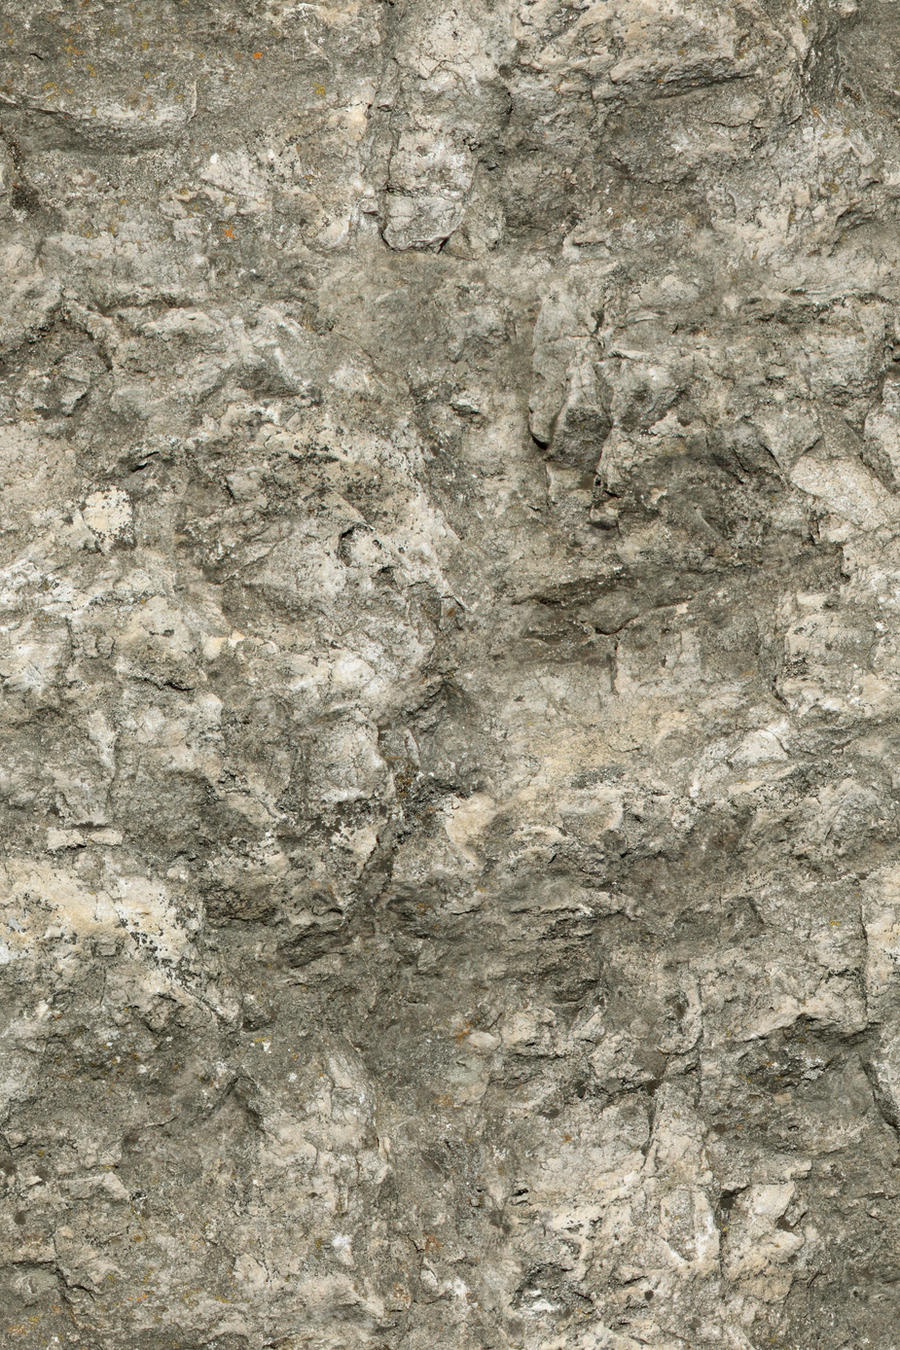 Stone Texture 7 - Seamless by AGF81